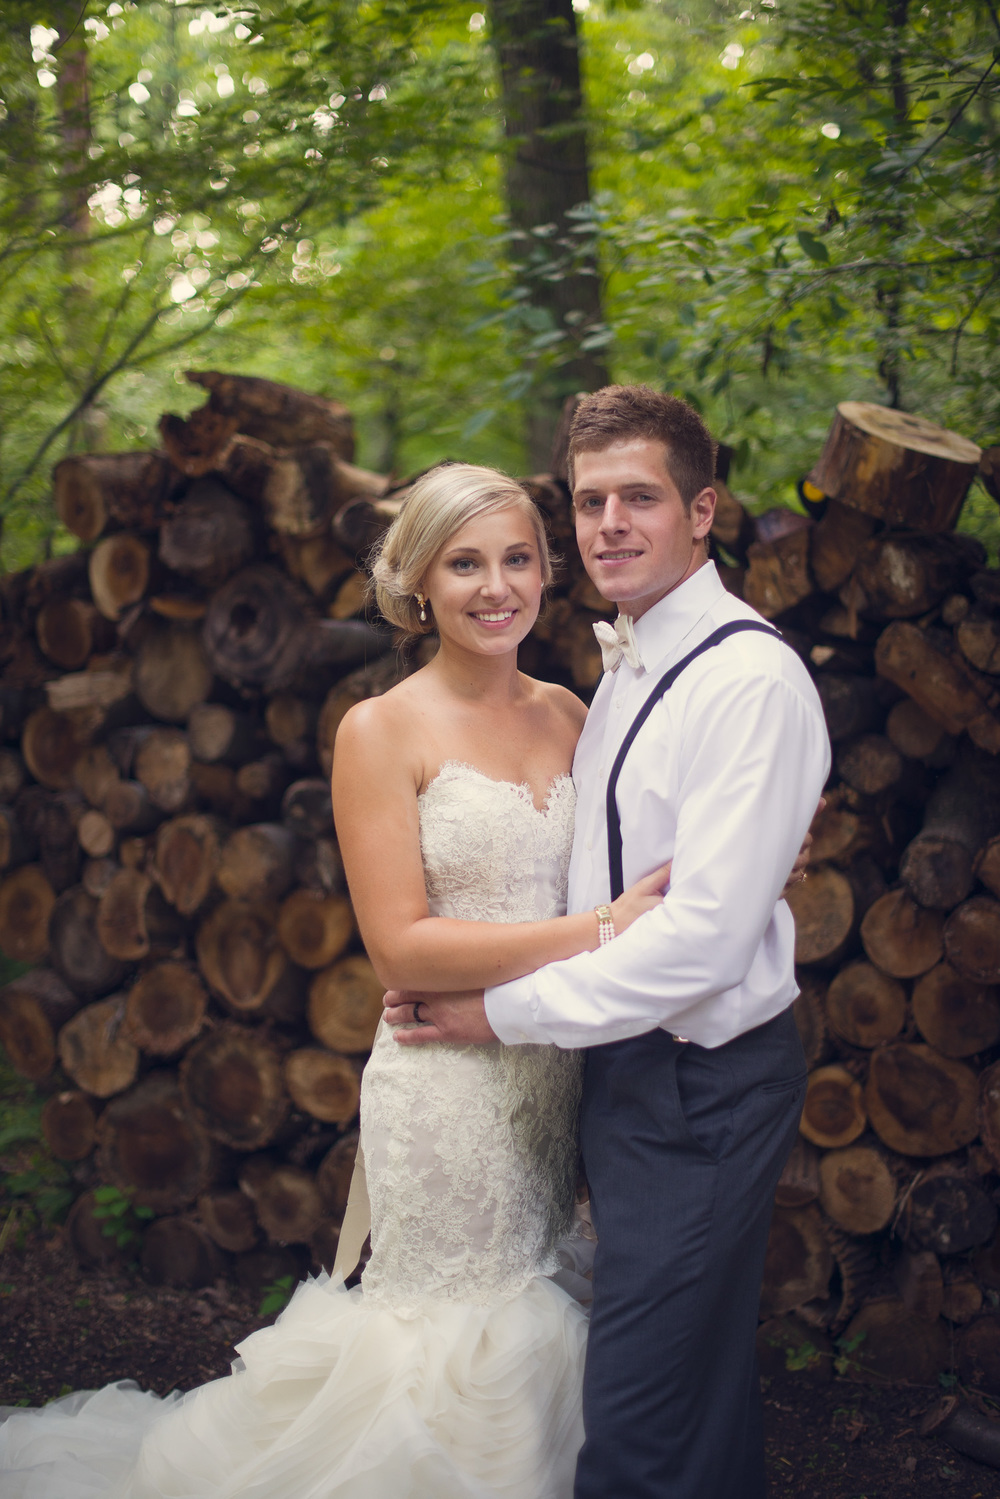 bride groom laughter smiling portrait THPHOTO forest woodpile